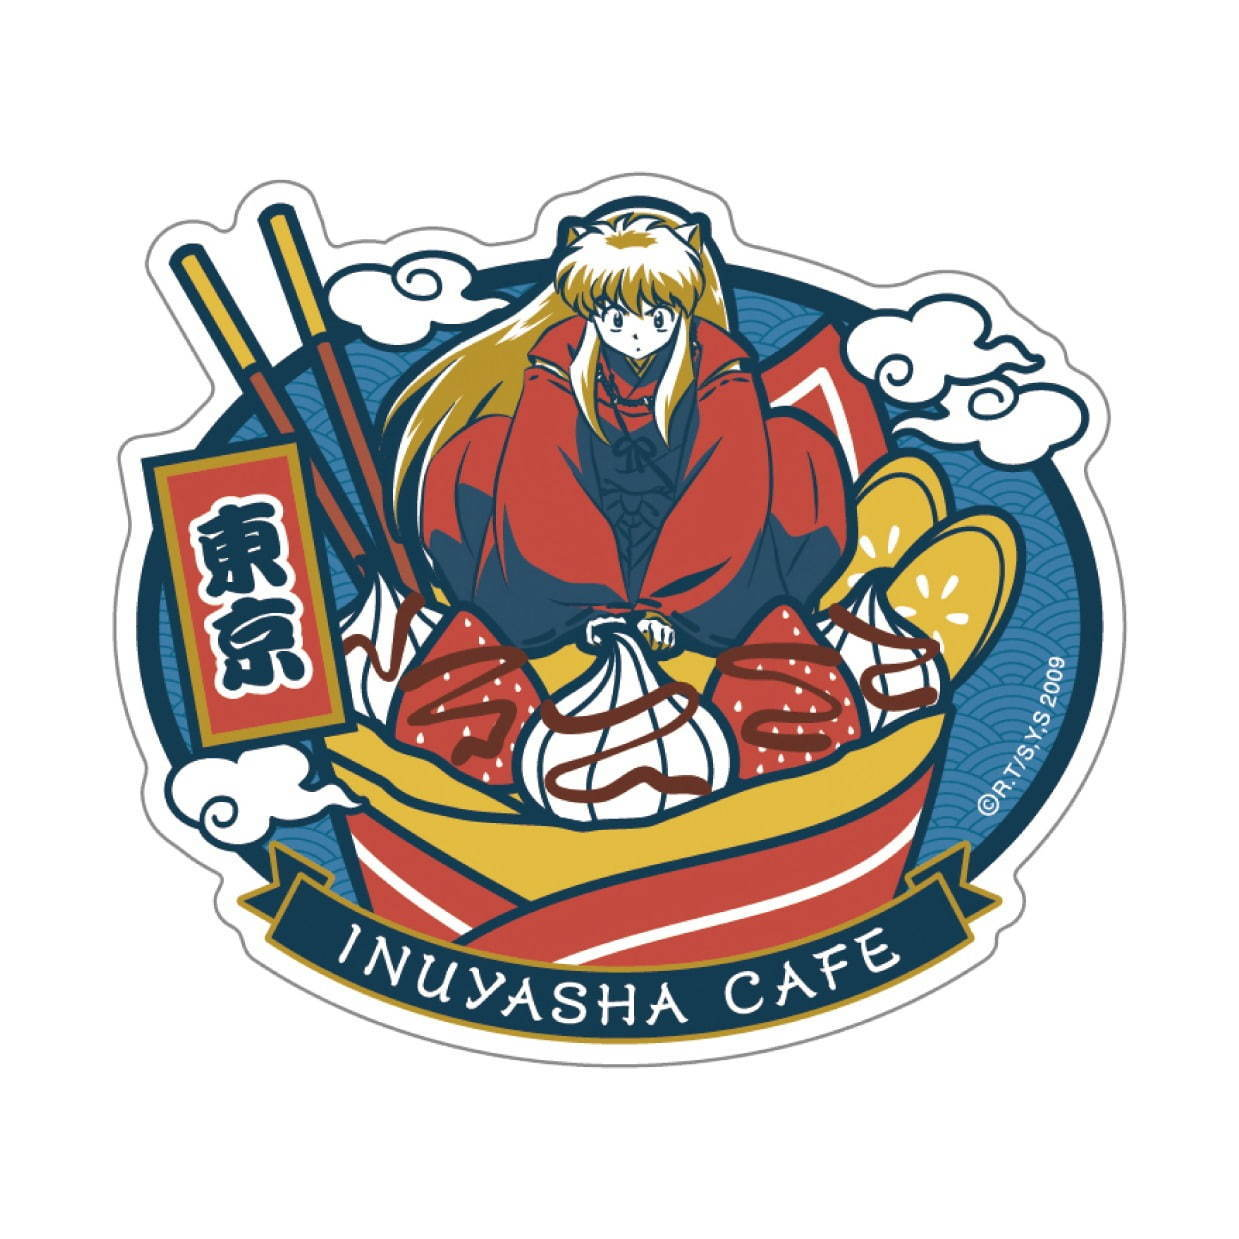 Inuyasha Cafe in Japan 2020